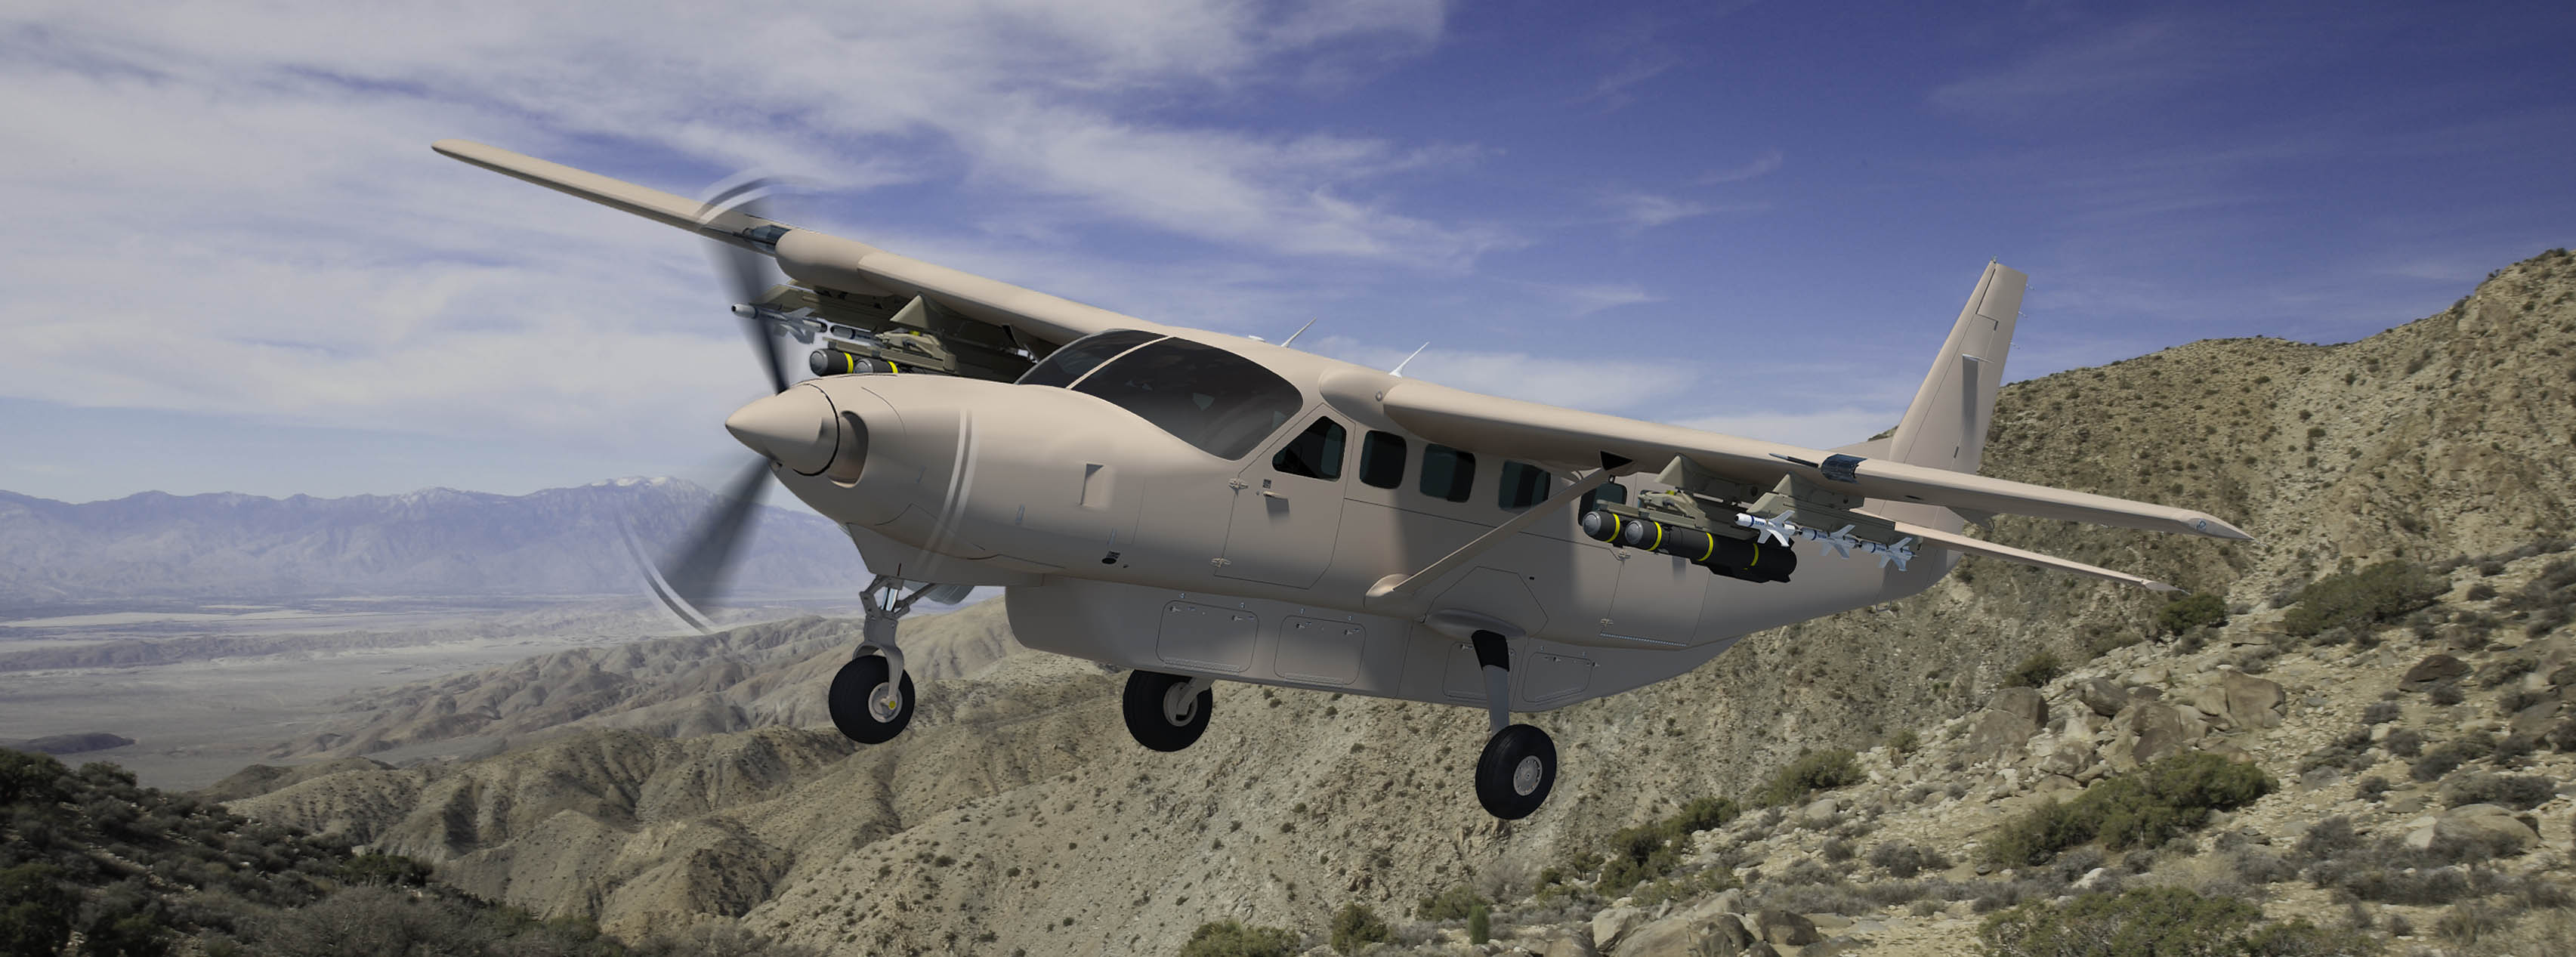 Image: Cessna Grand Caravan EX with hard point provisions